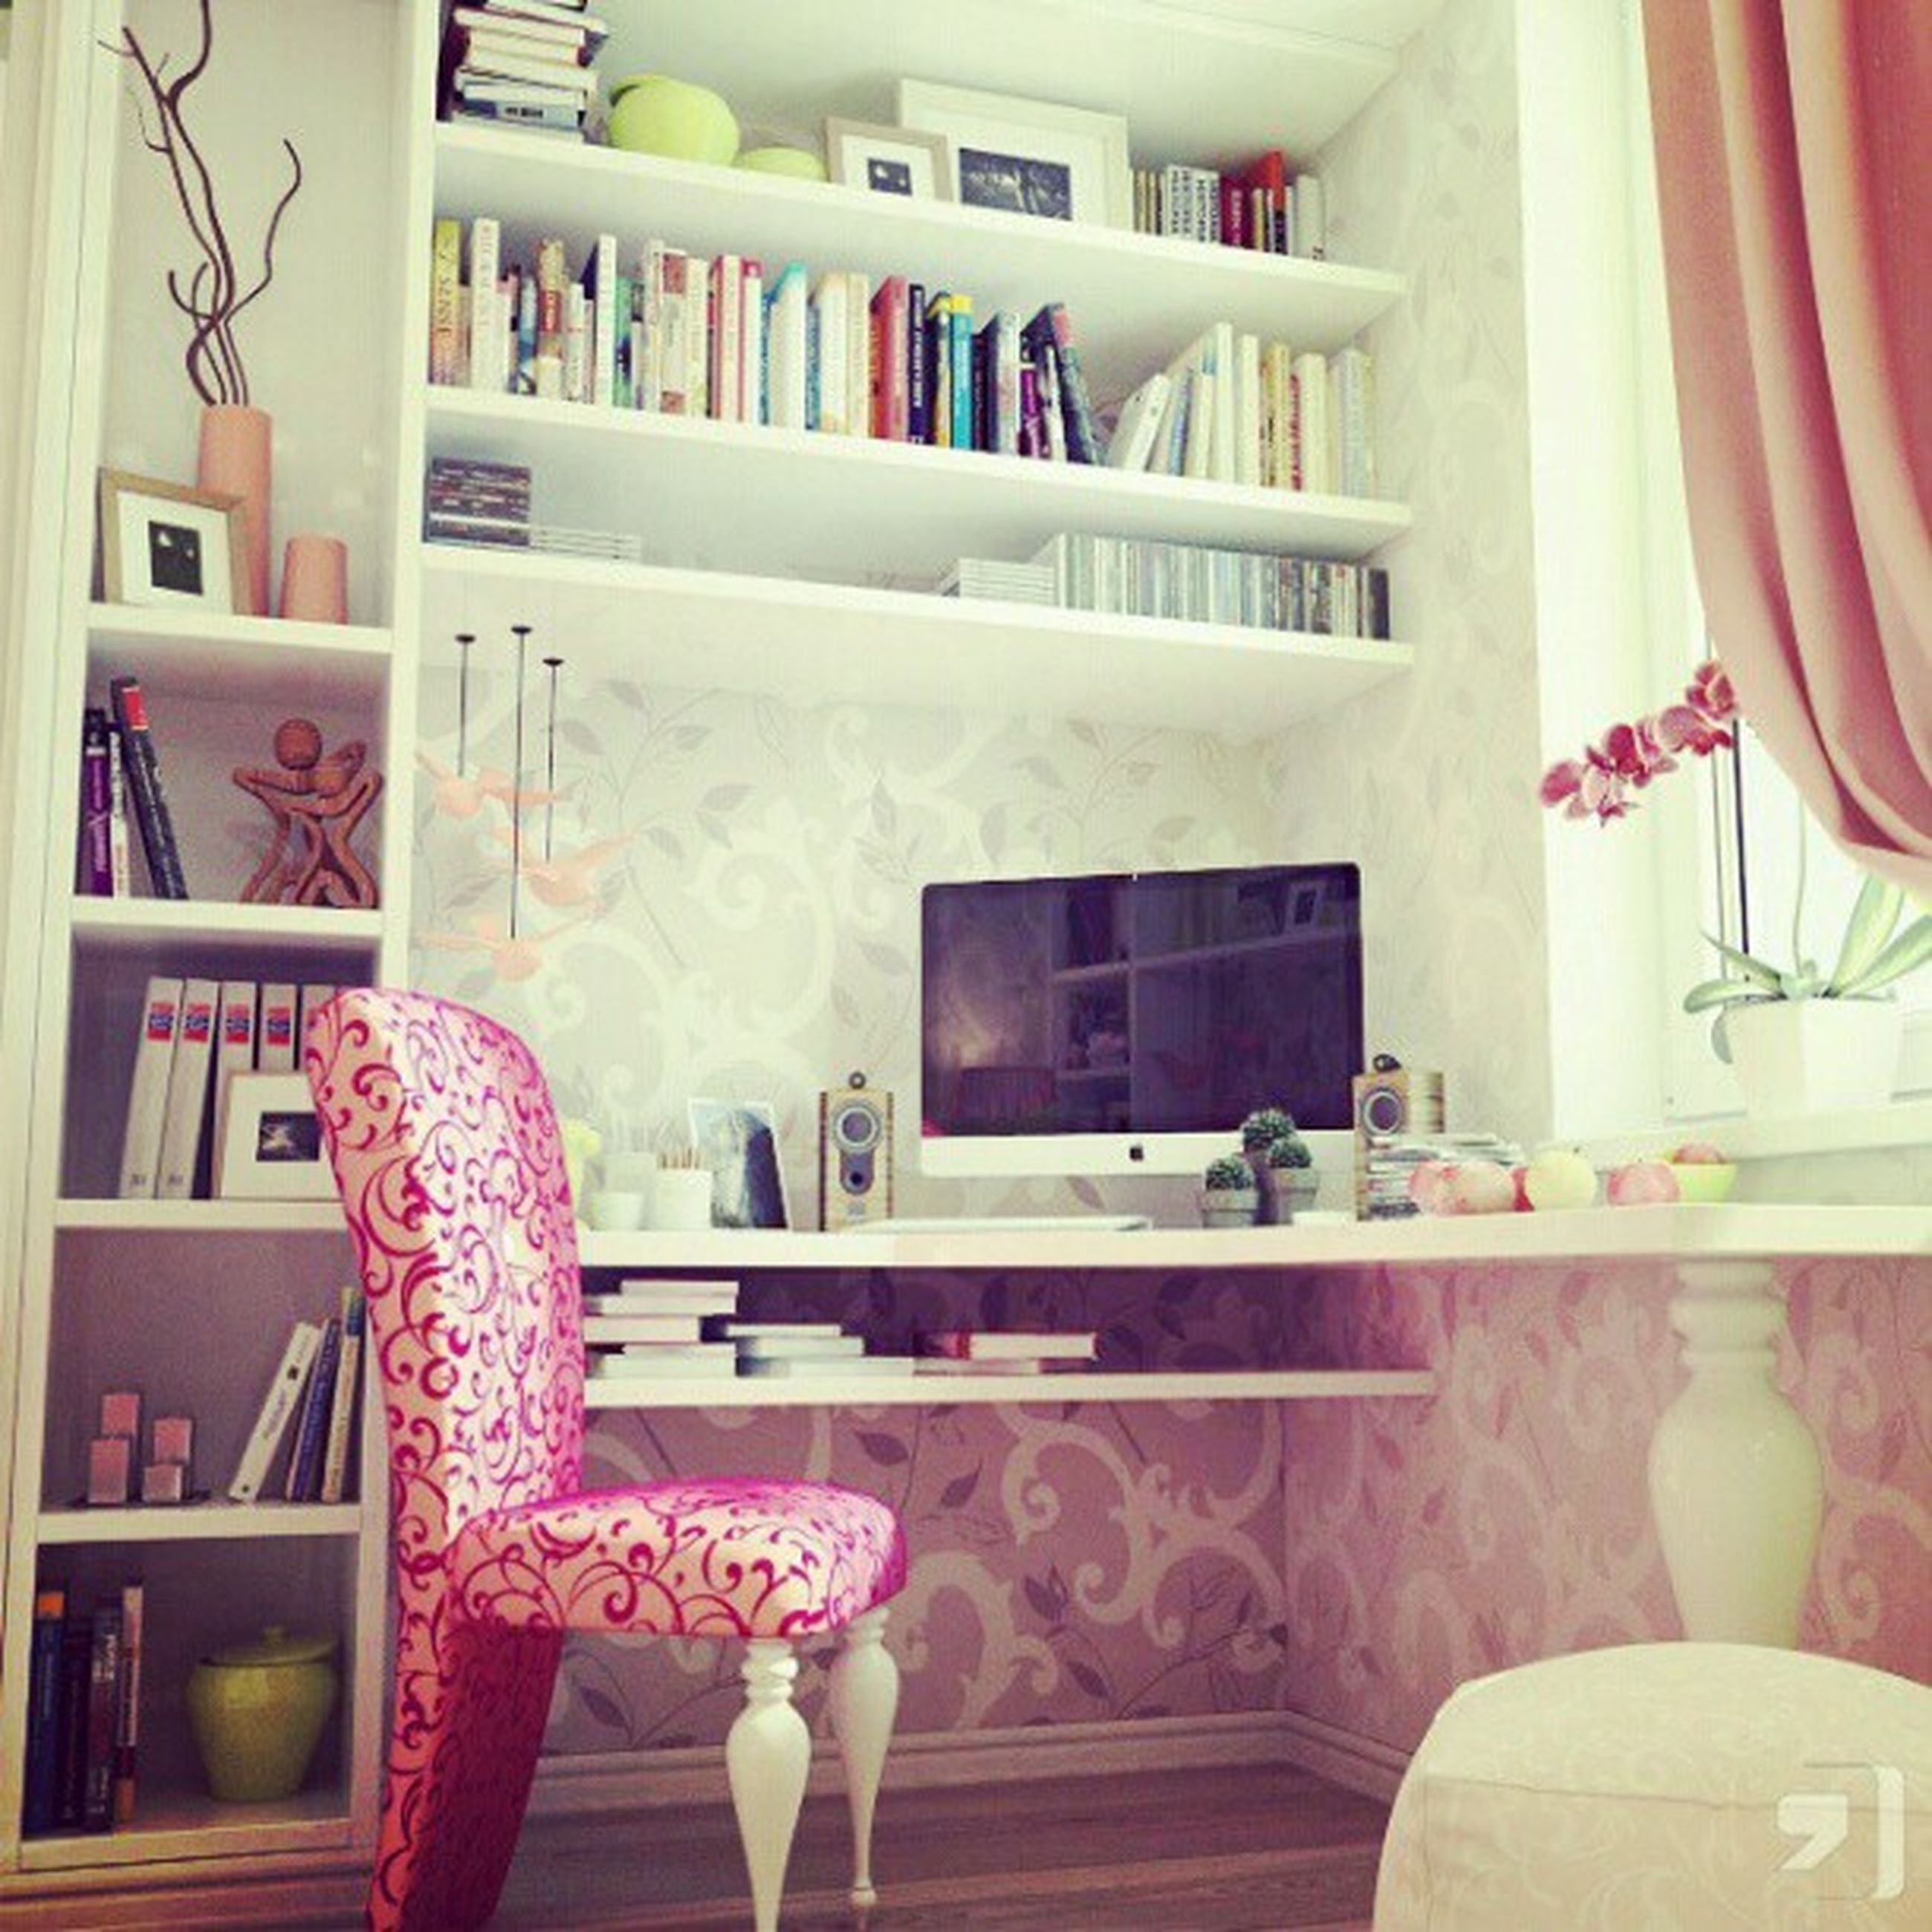 indoors, chair, flower, window, built structure, architecture, table, hanging, variation, decoration, potted plant, clothing, book, day, multi colored, balcony, house, curtain, home interior, no people